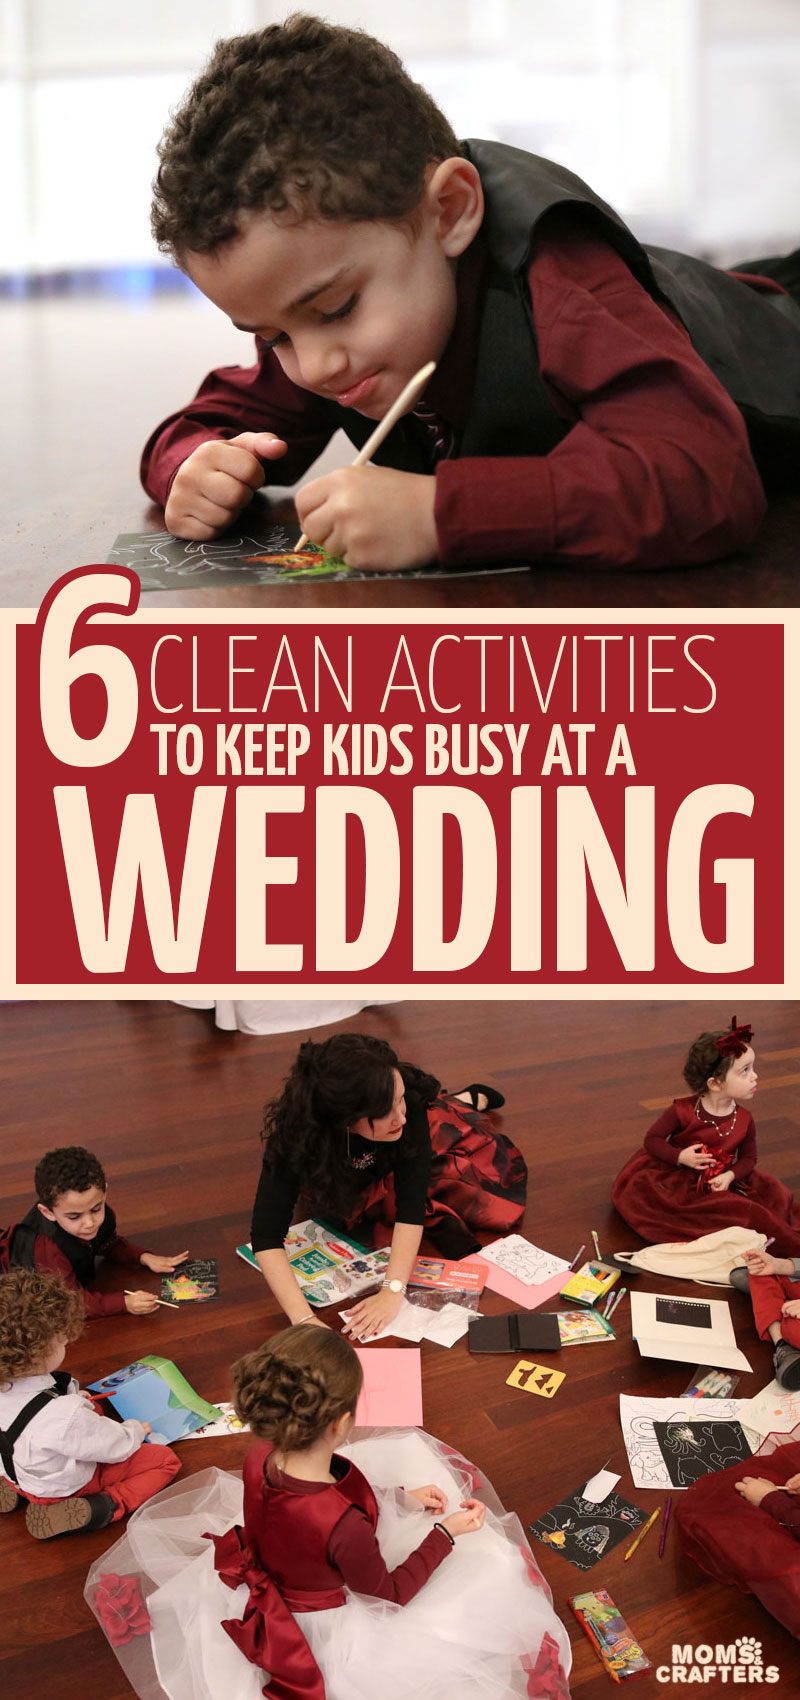 6 Ideas for entertaning kids at a wedding - quiet, mess-free creative activities for toddler through tween to do while available for photos at a wedding. #wedding #kidsactivities #messfreecrafts